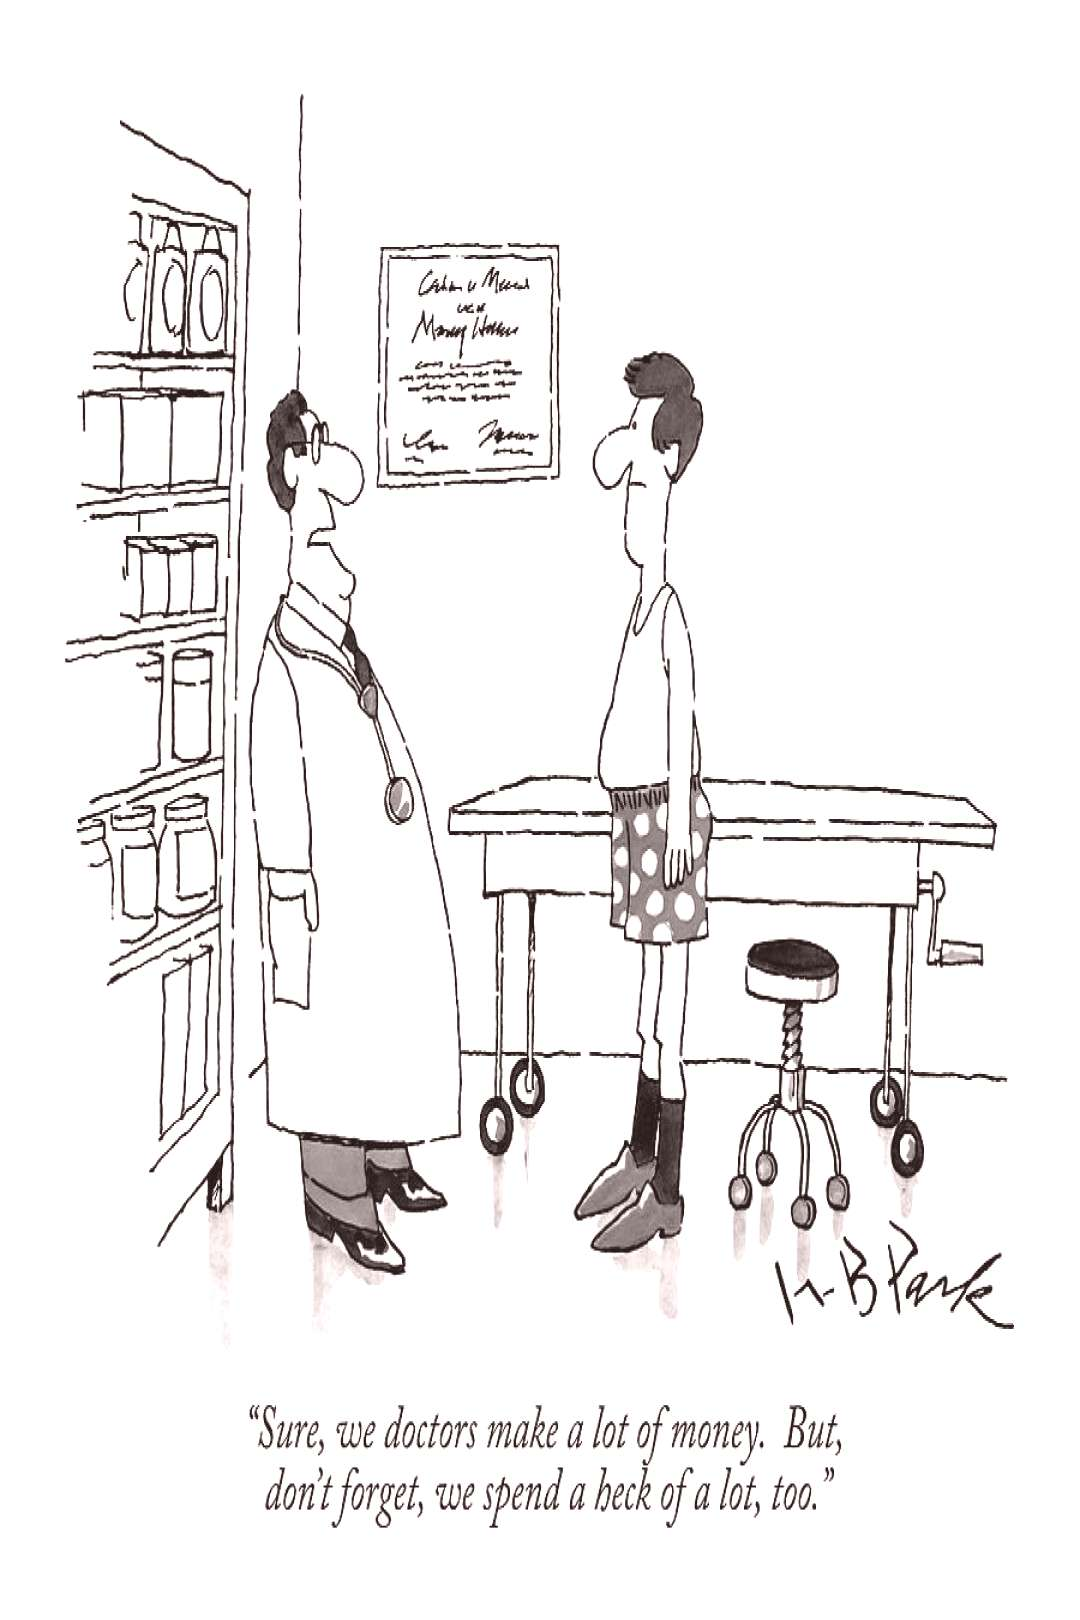 Drawing - Sure, We Doctors Make A Lot Of Money. But, Don't by W.B. Park ,